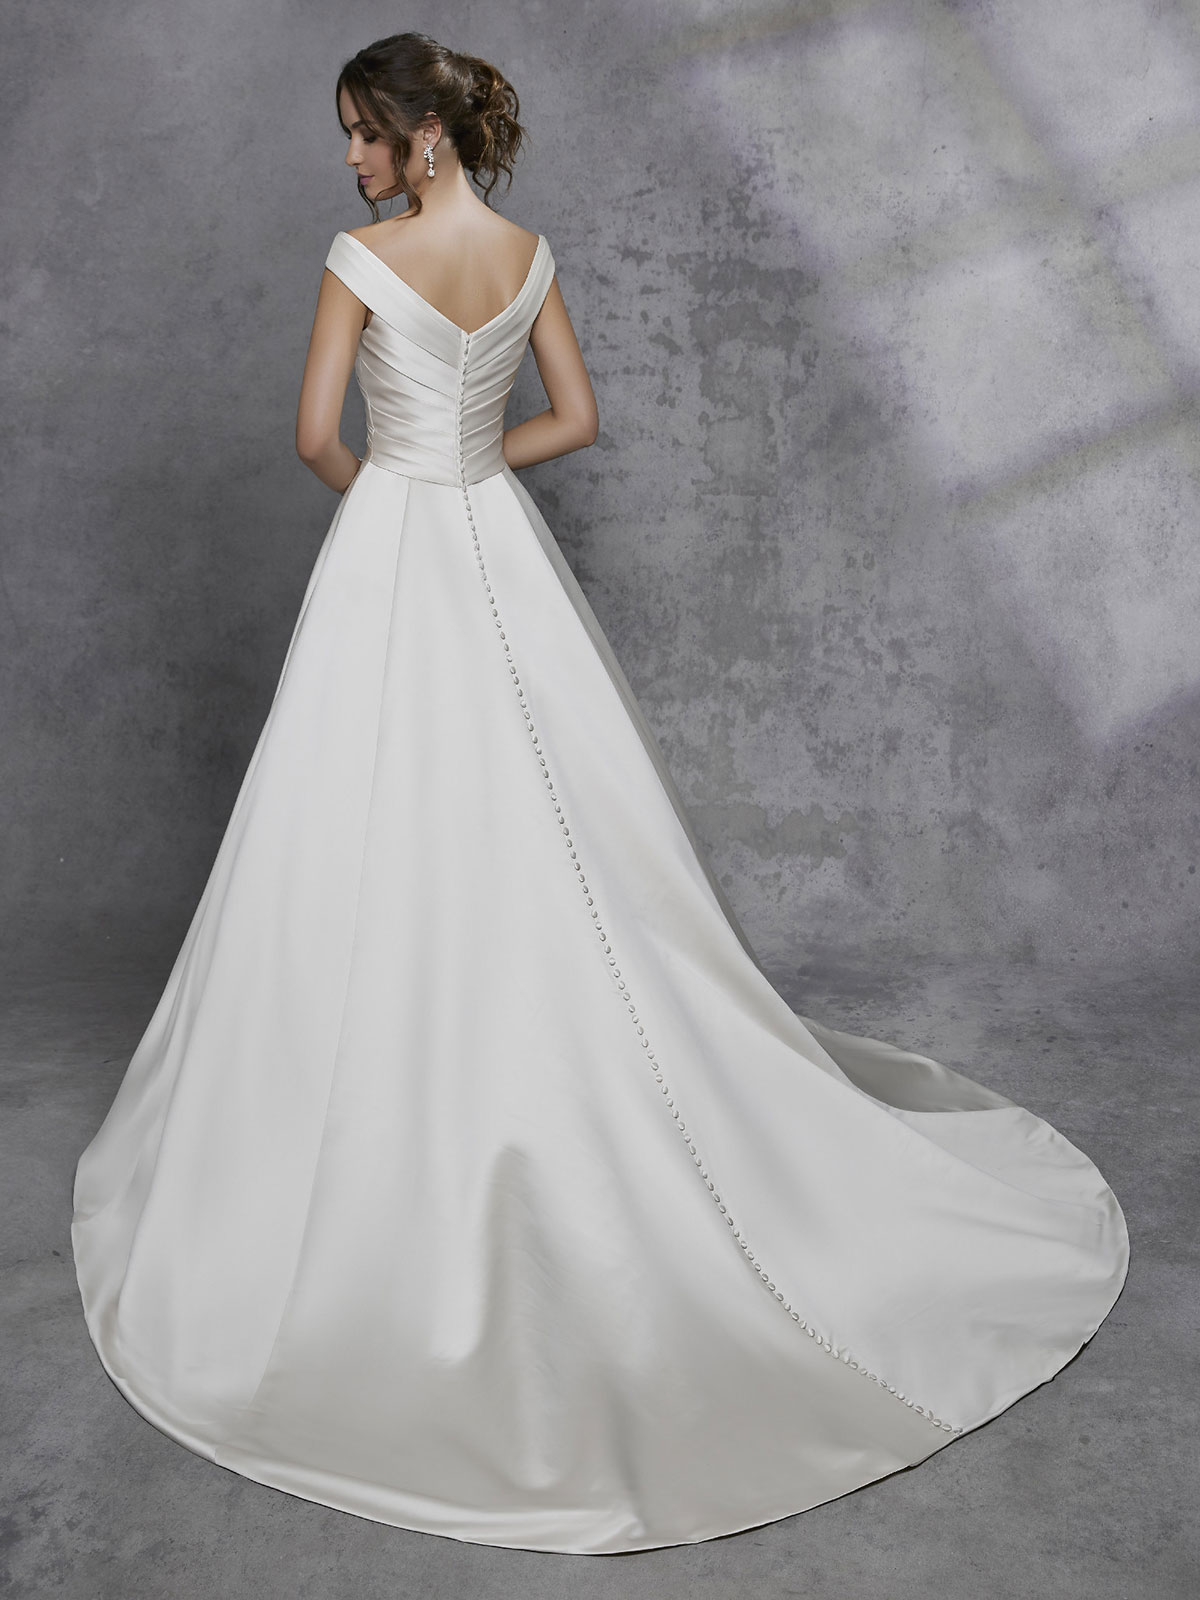 Ronald Joyce - Idony Reverse Wedding Gown Leeds